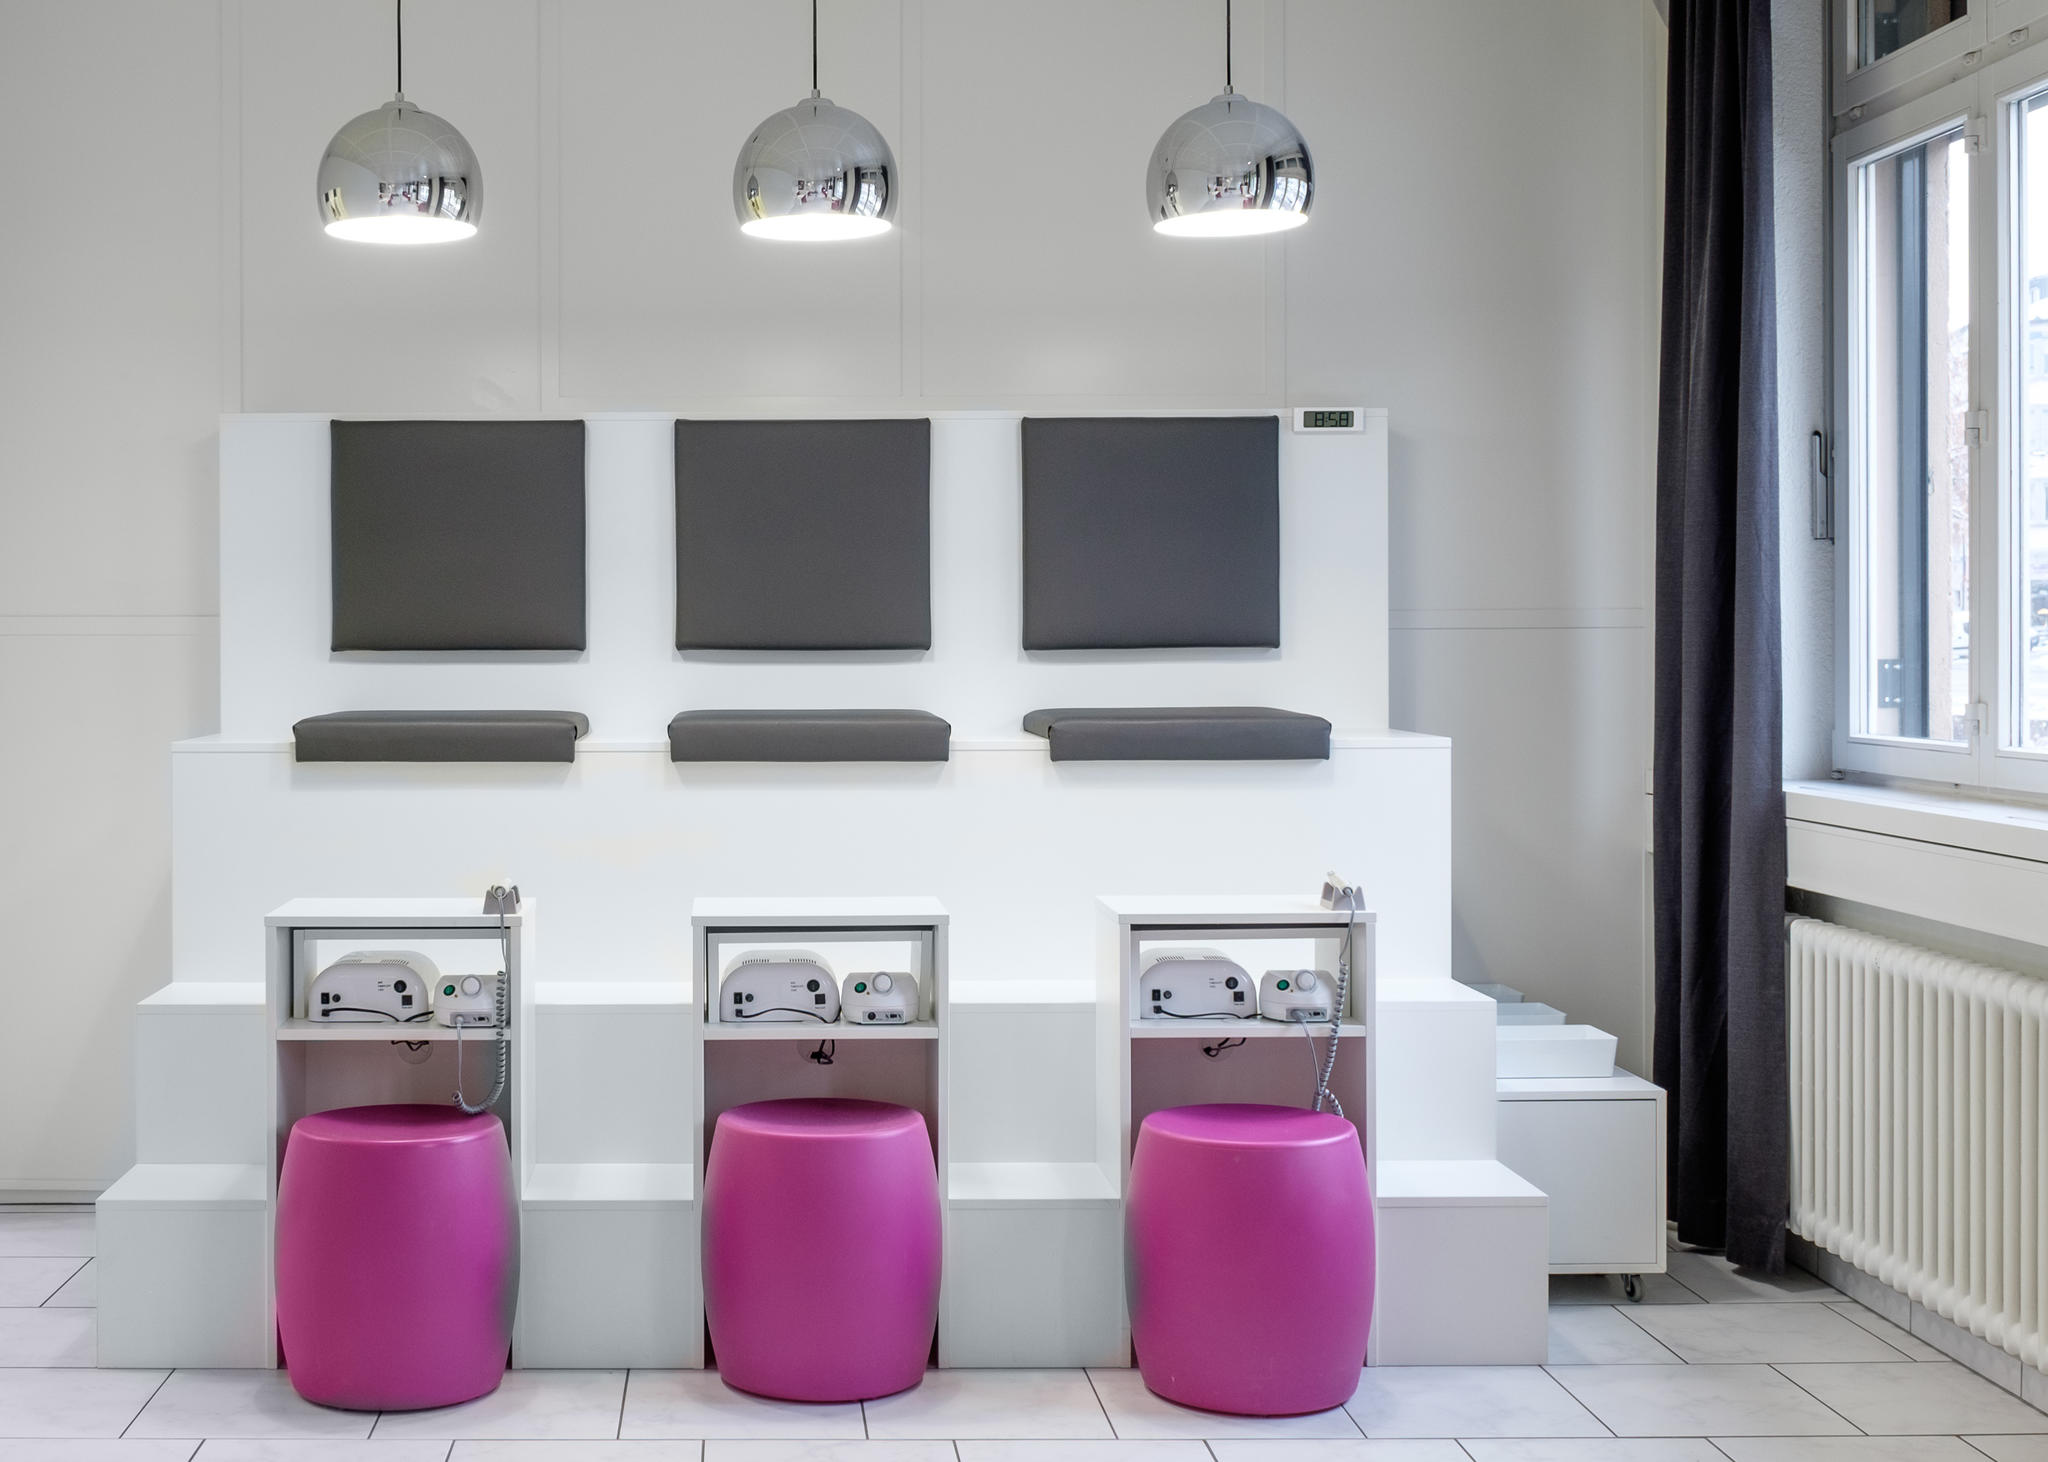 ber 10 jahre erfahrung im nail kosmetik bereich amanda nails beauty gmbh. Black Bedroom Furniture Sets. Home Design Ideas